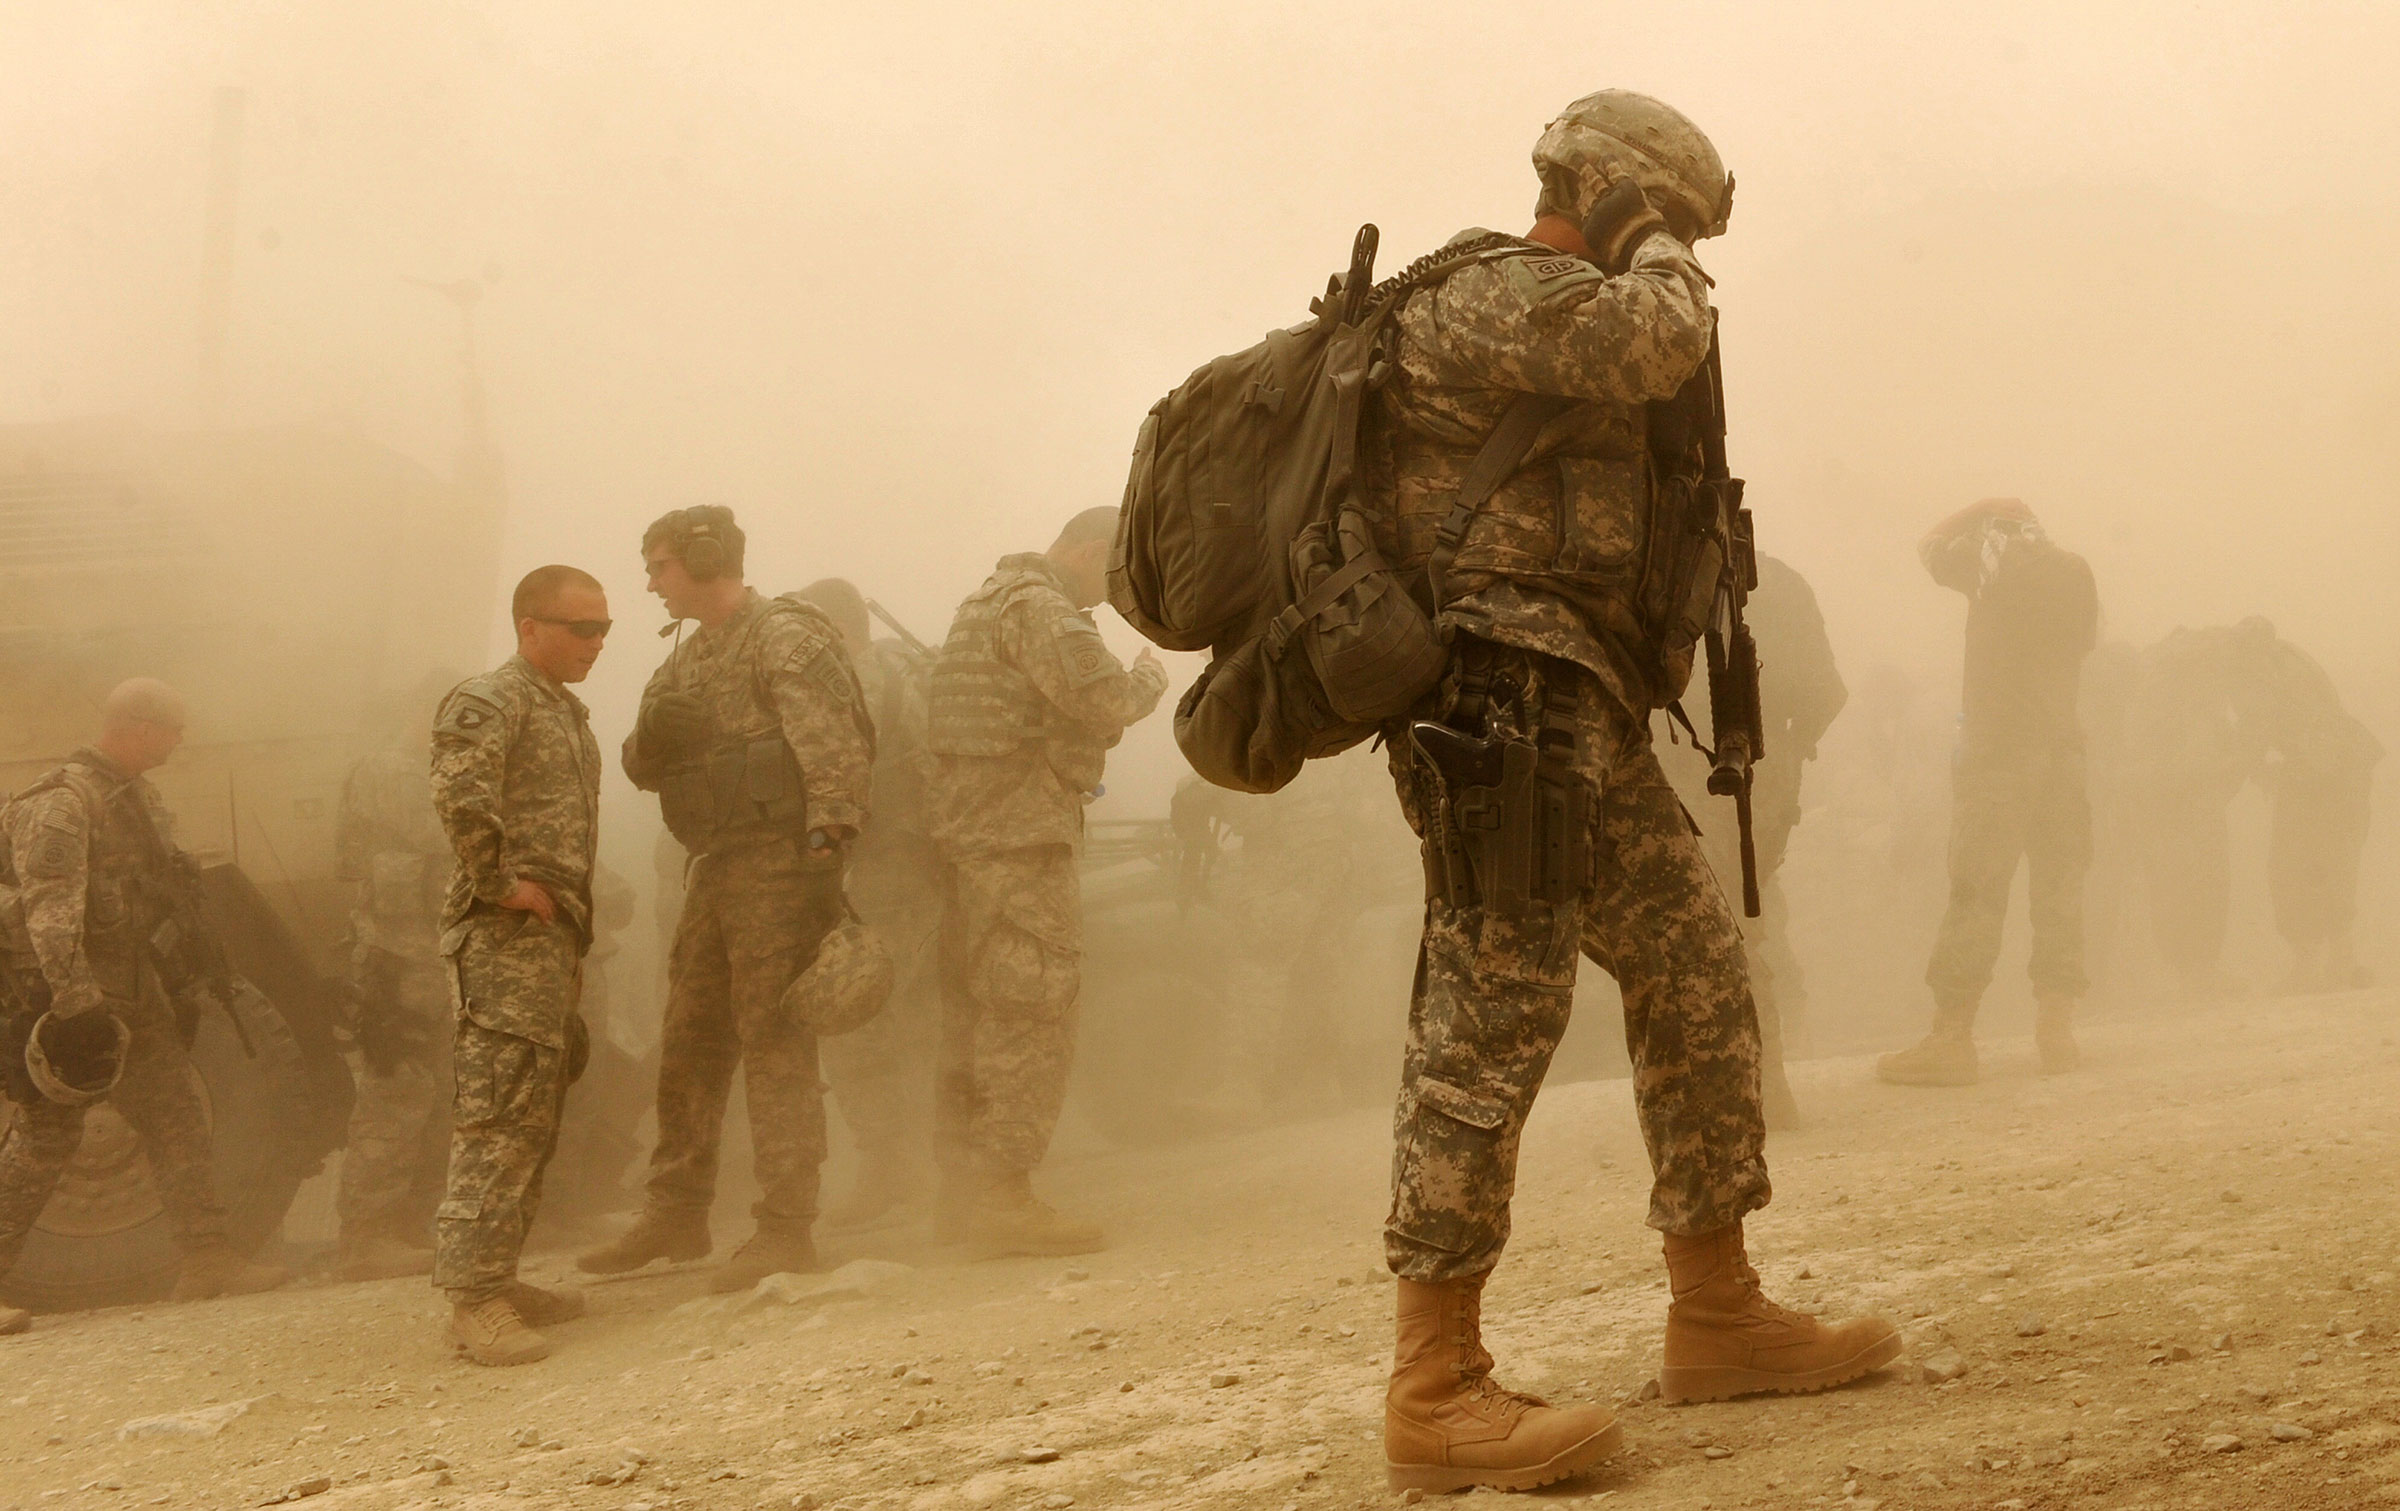 US Army soldiers walk at US military Camp Wilderness in Khost province, Afghanistan on April 10, 2010.